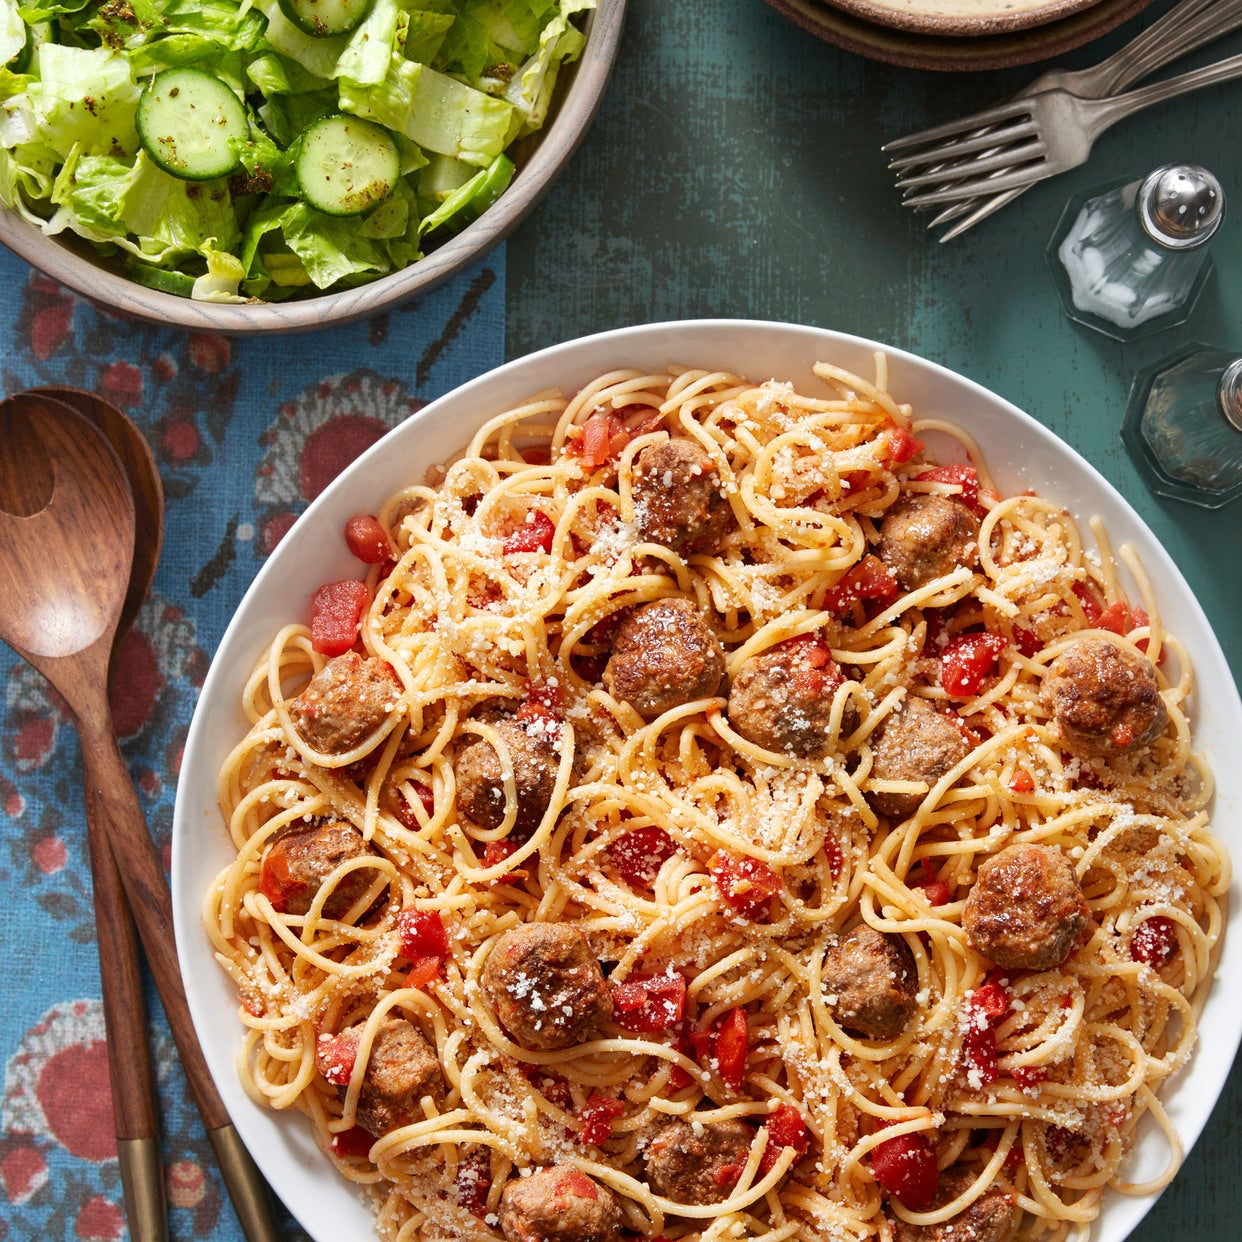 Spaghetti & Meatballs with Romaine Salad & Oregano Dressing